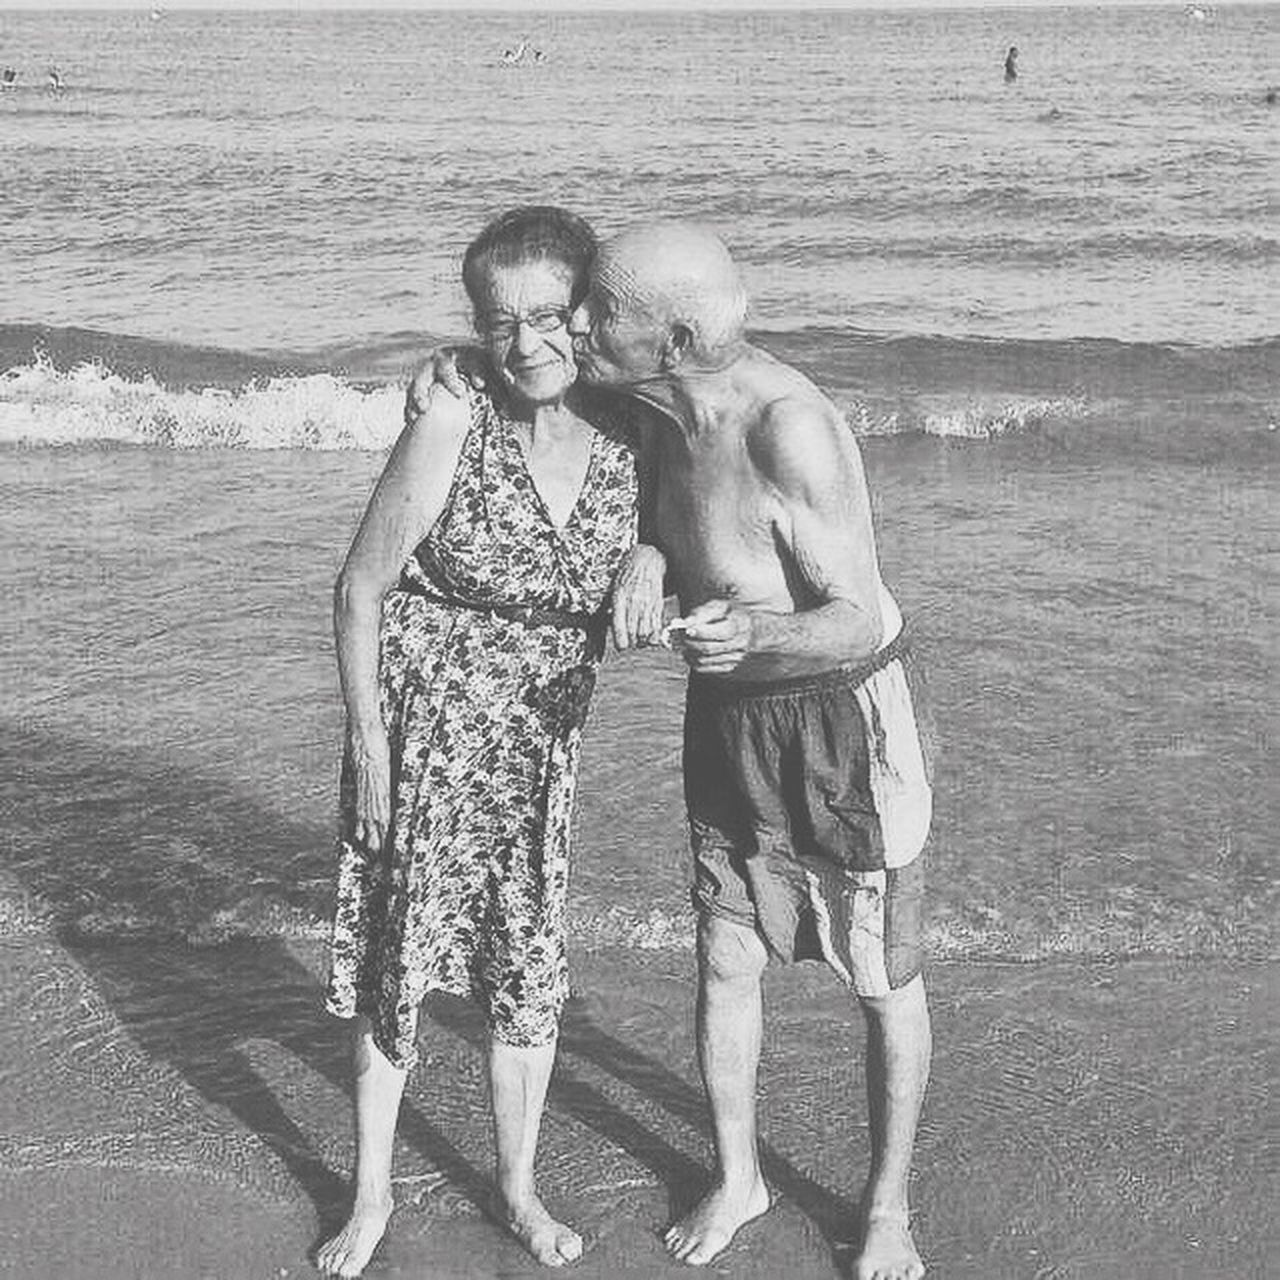 Old love (2014) Happiness Smiling Two People Senior Adult Togetherness Sea Beach Bonding Full Length Summer Water Vacations Outdoors Leisure Activity Friendship Portrait Real People Senior Men Adult People